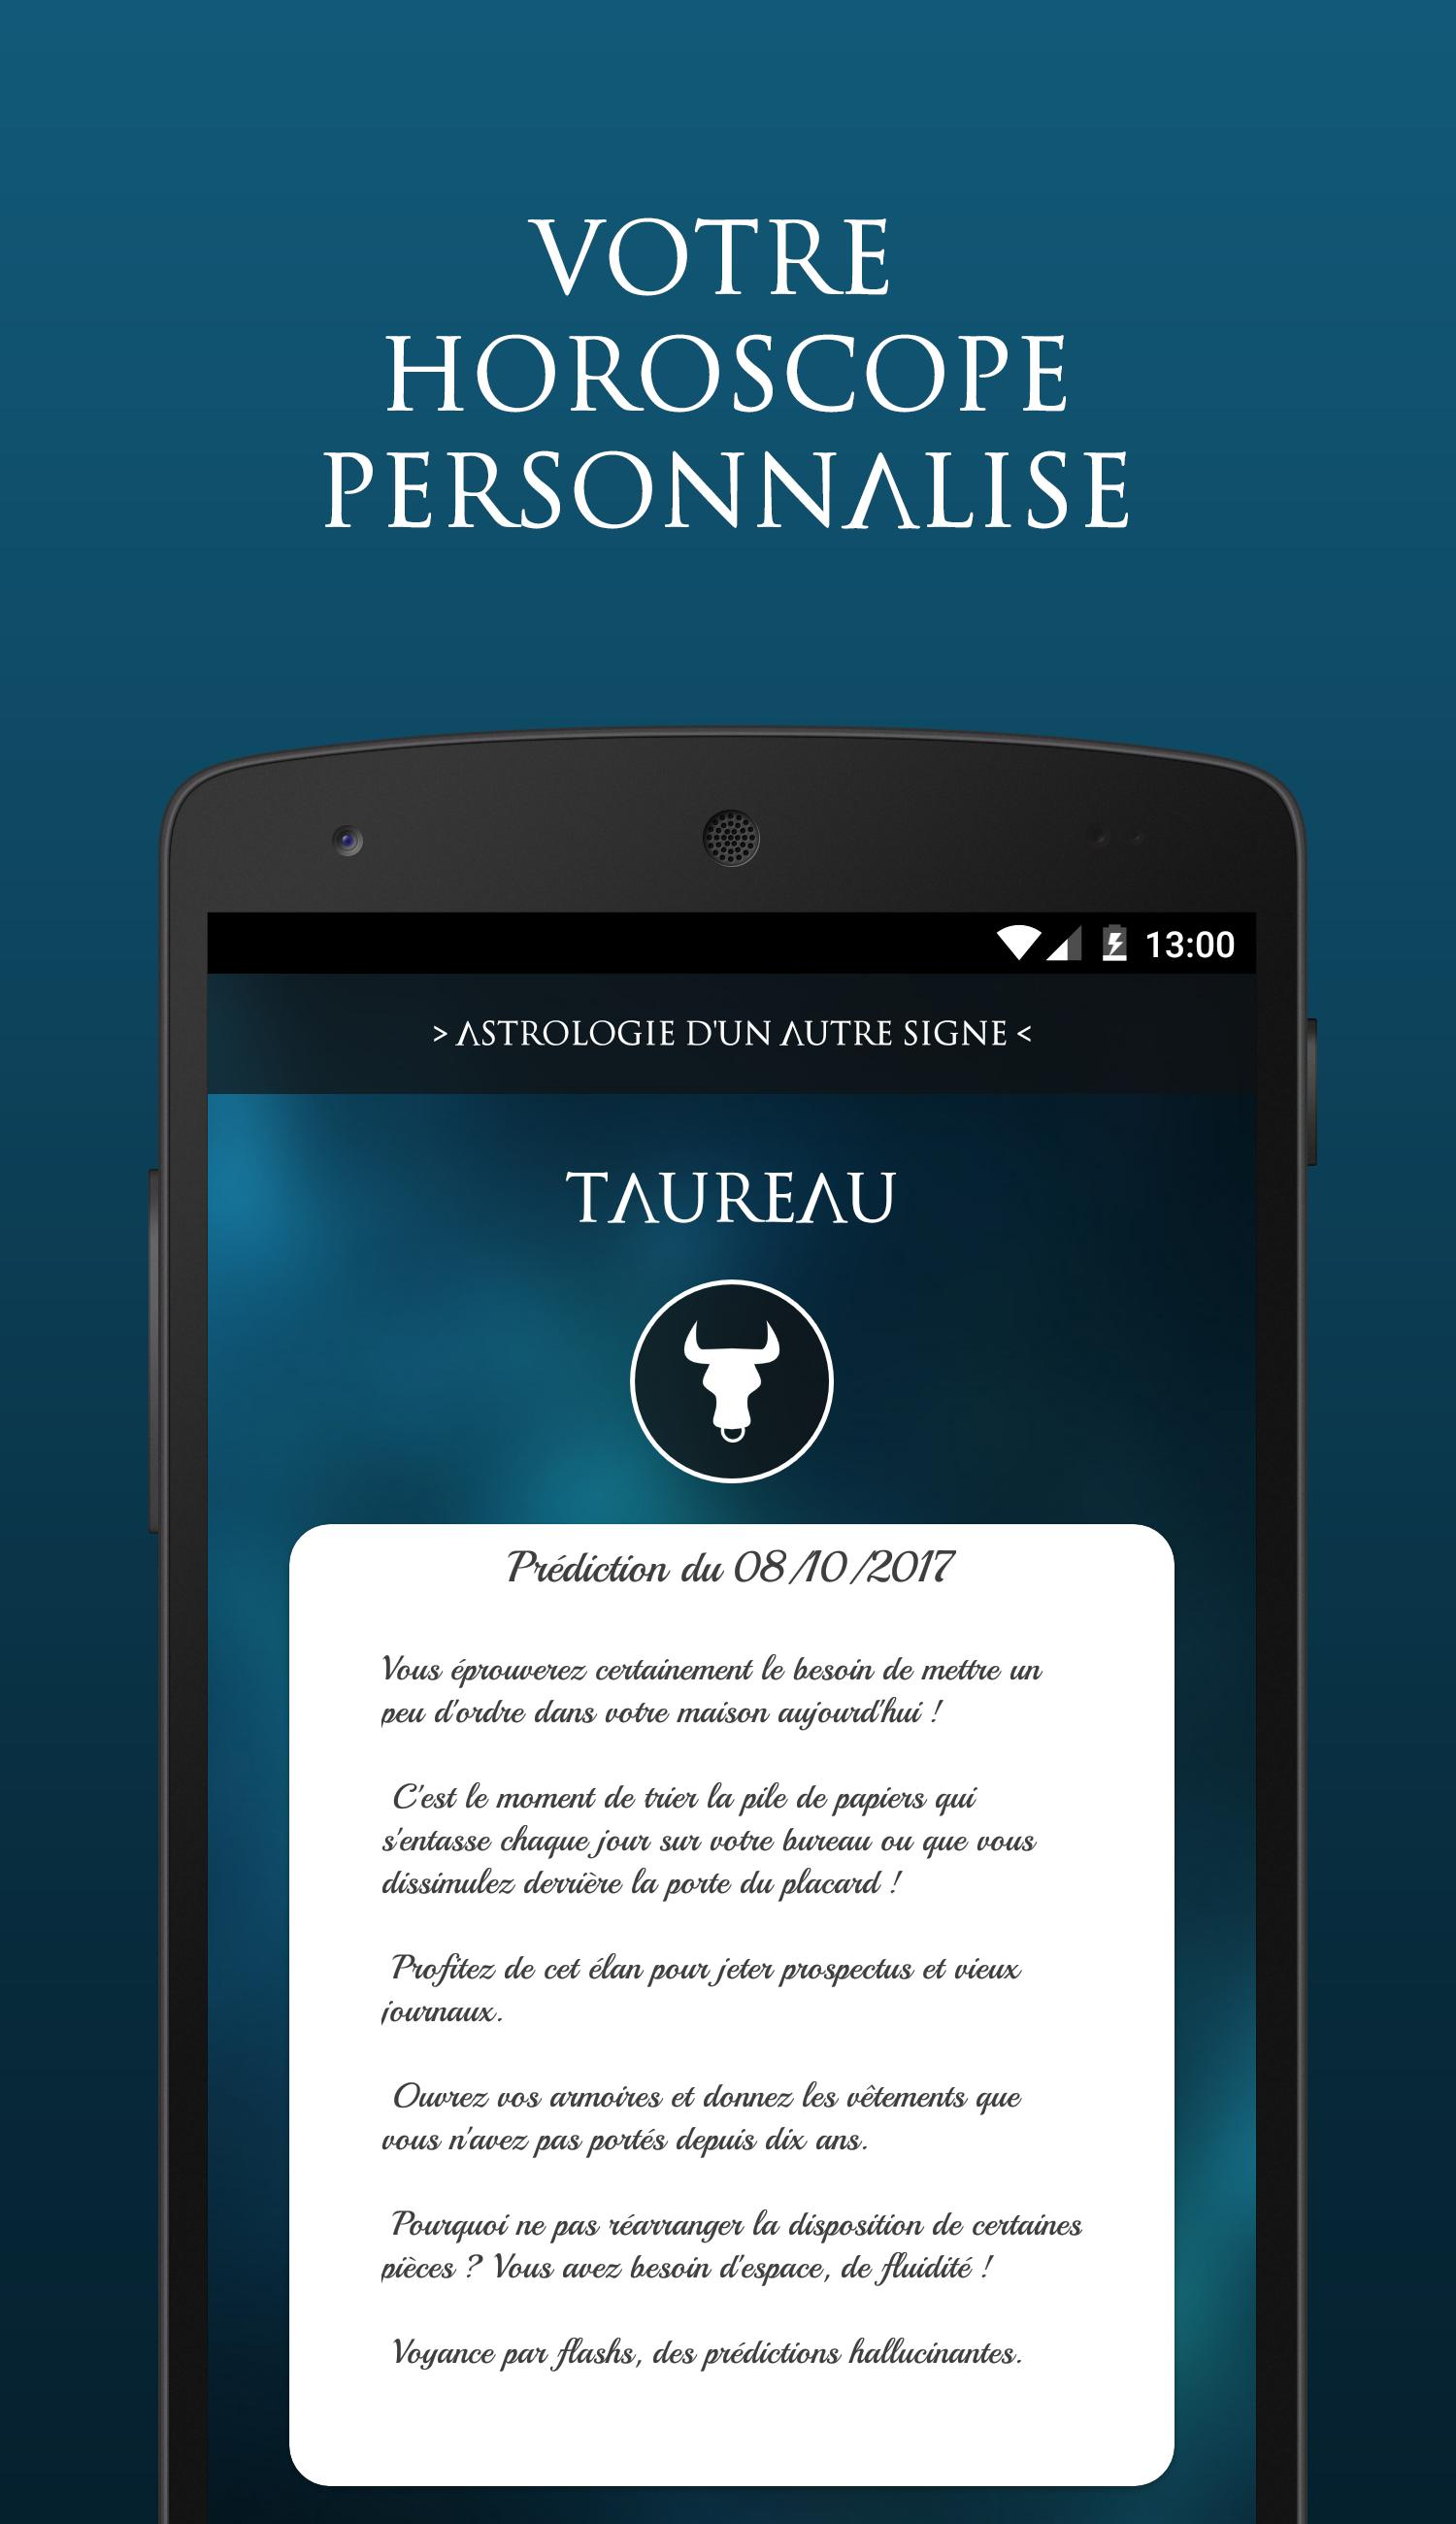 La Maison Du Placard mon horoscope taureau ♉ for android - apk download